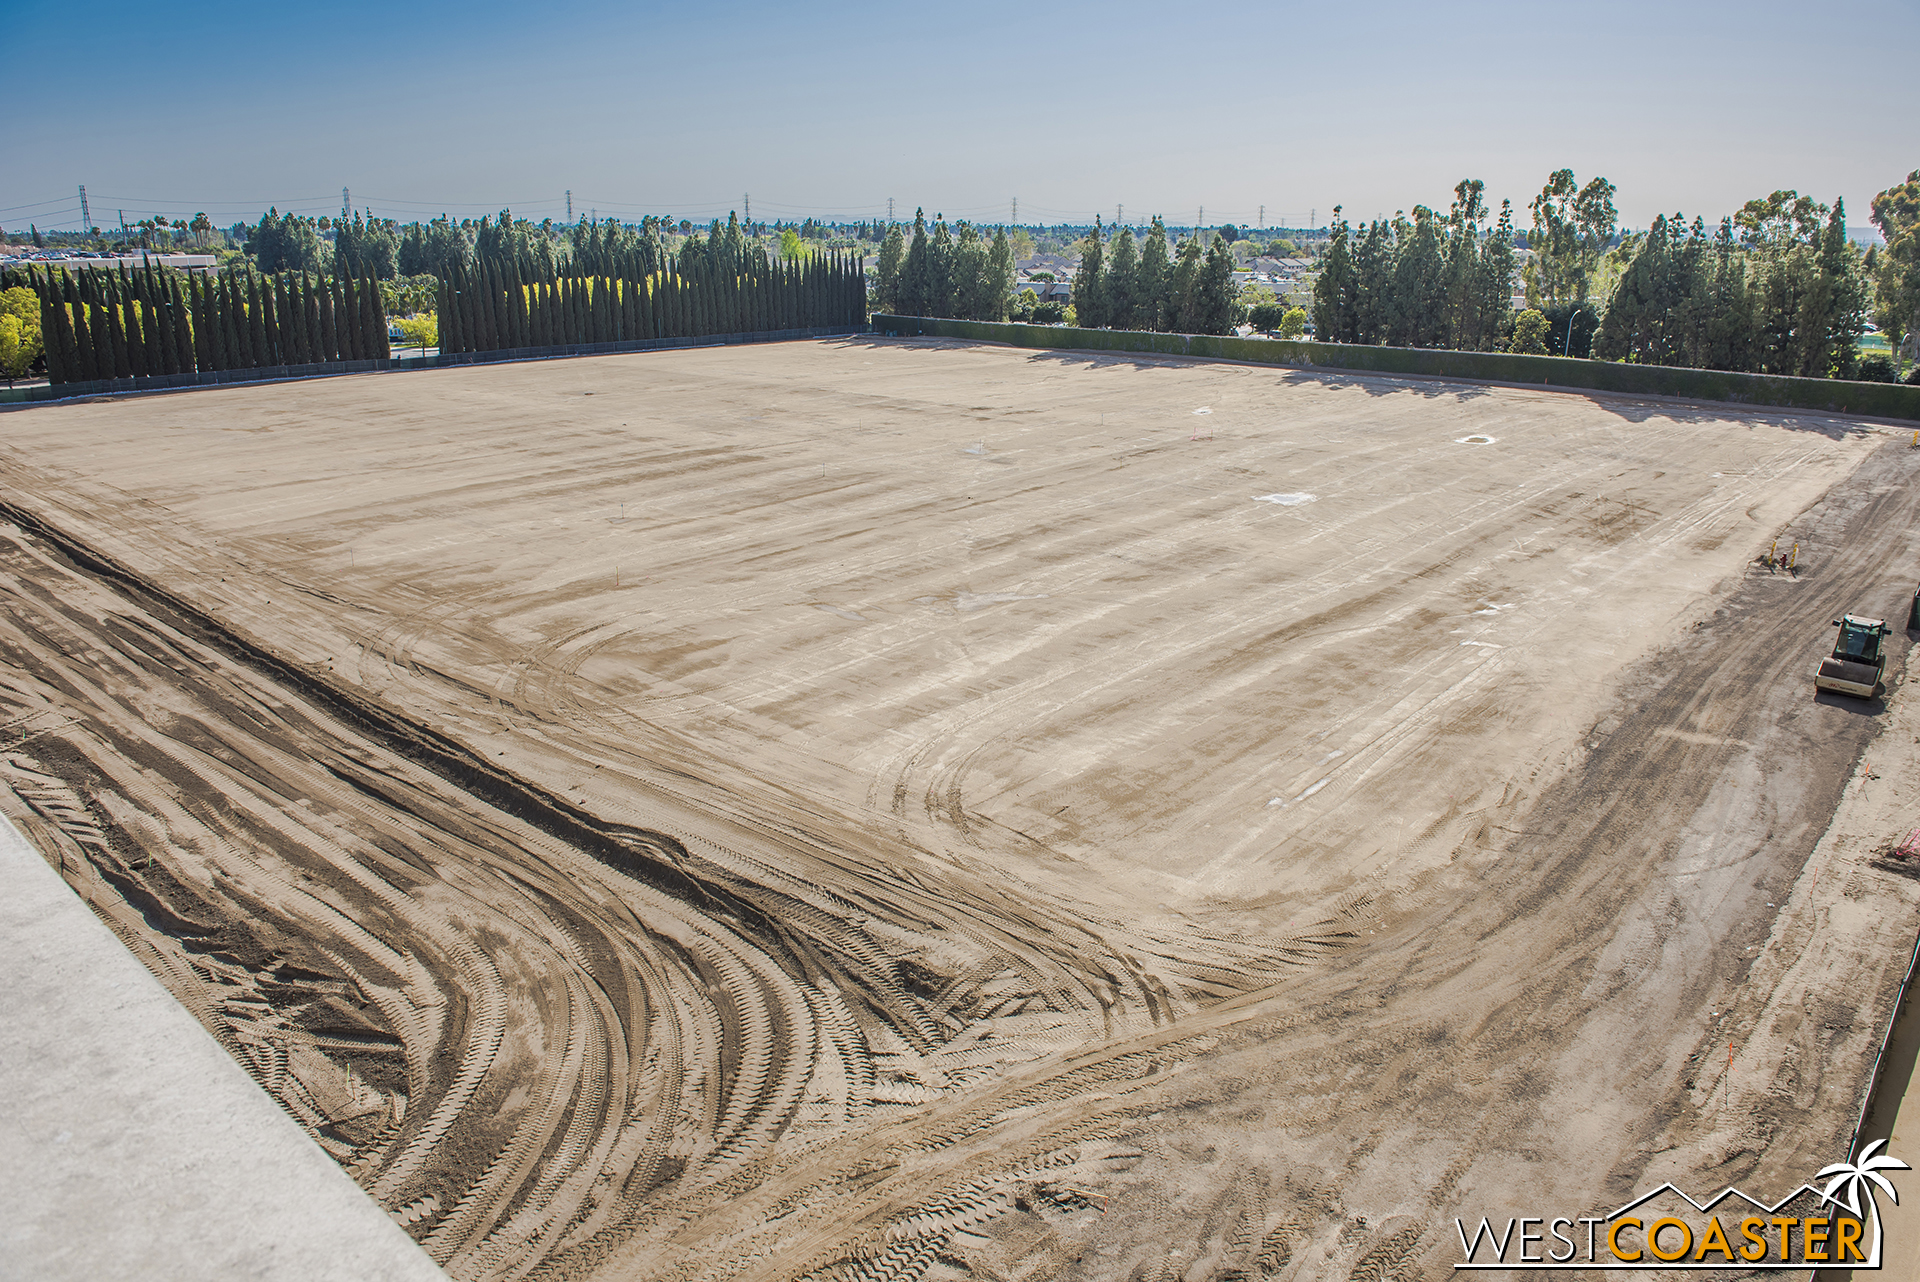 Meanwhile, the site on the west half has been graded so flatly that it almost looks like they just sprinkled dirt over the existing parking lot asphalt.